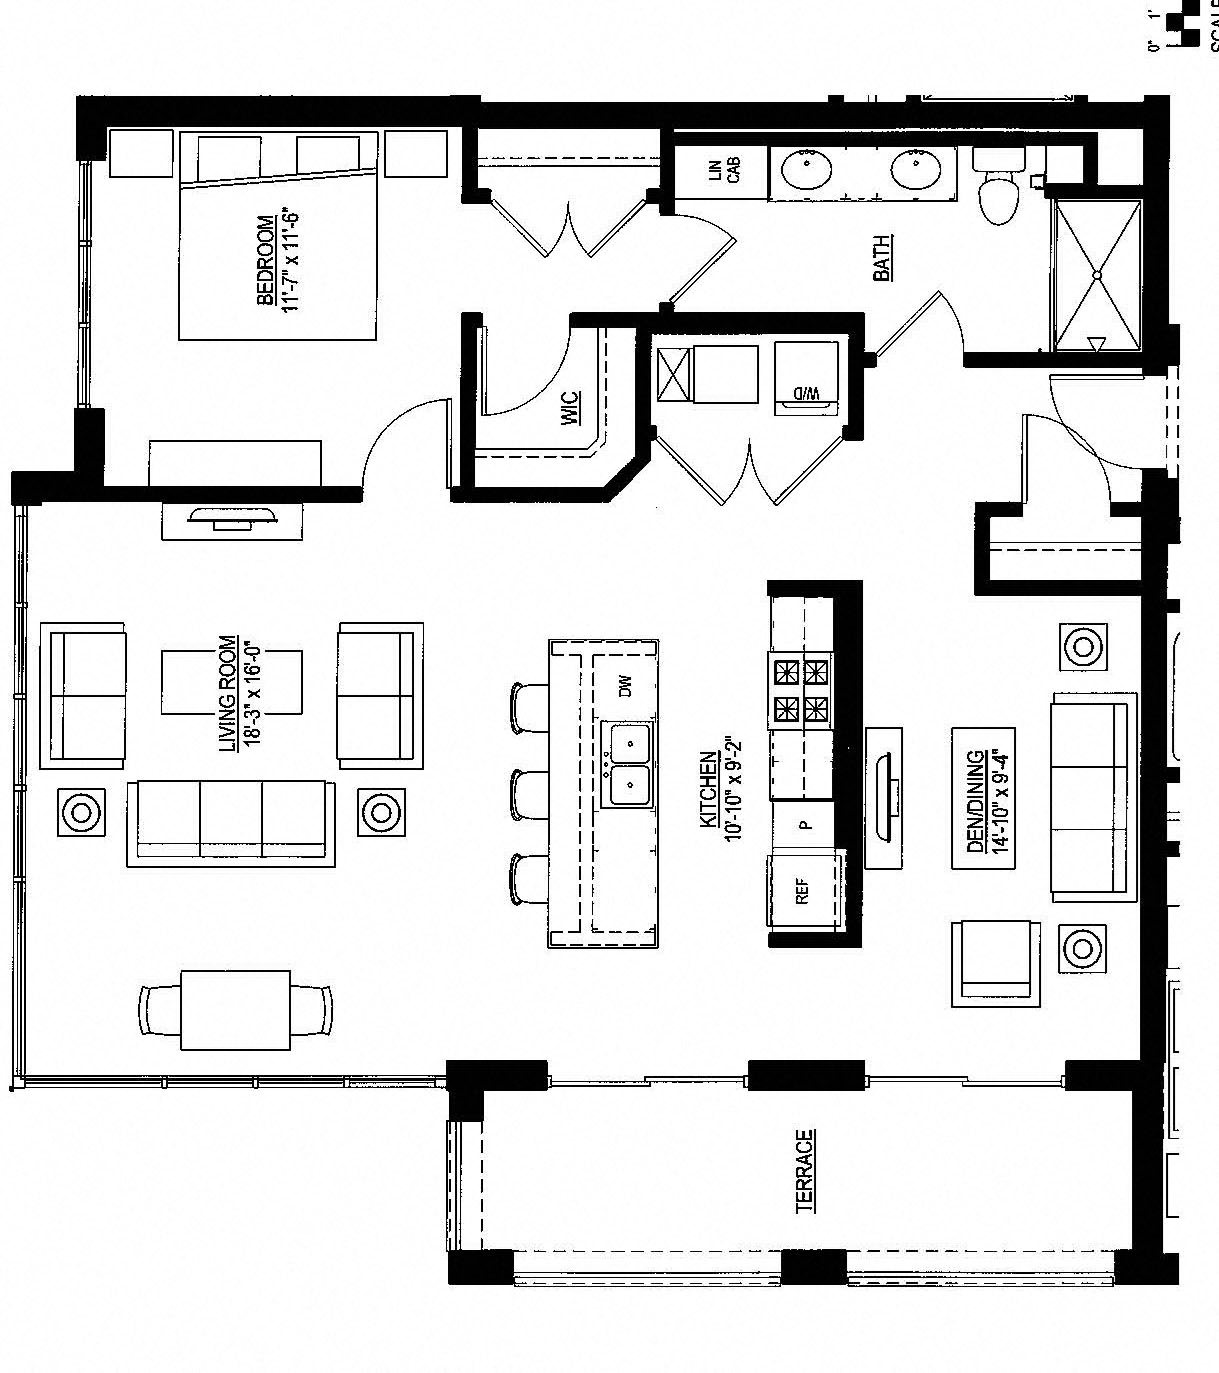 1098sf- Penthouse w/Balcony Floor Plan 6